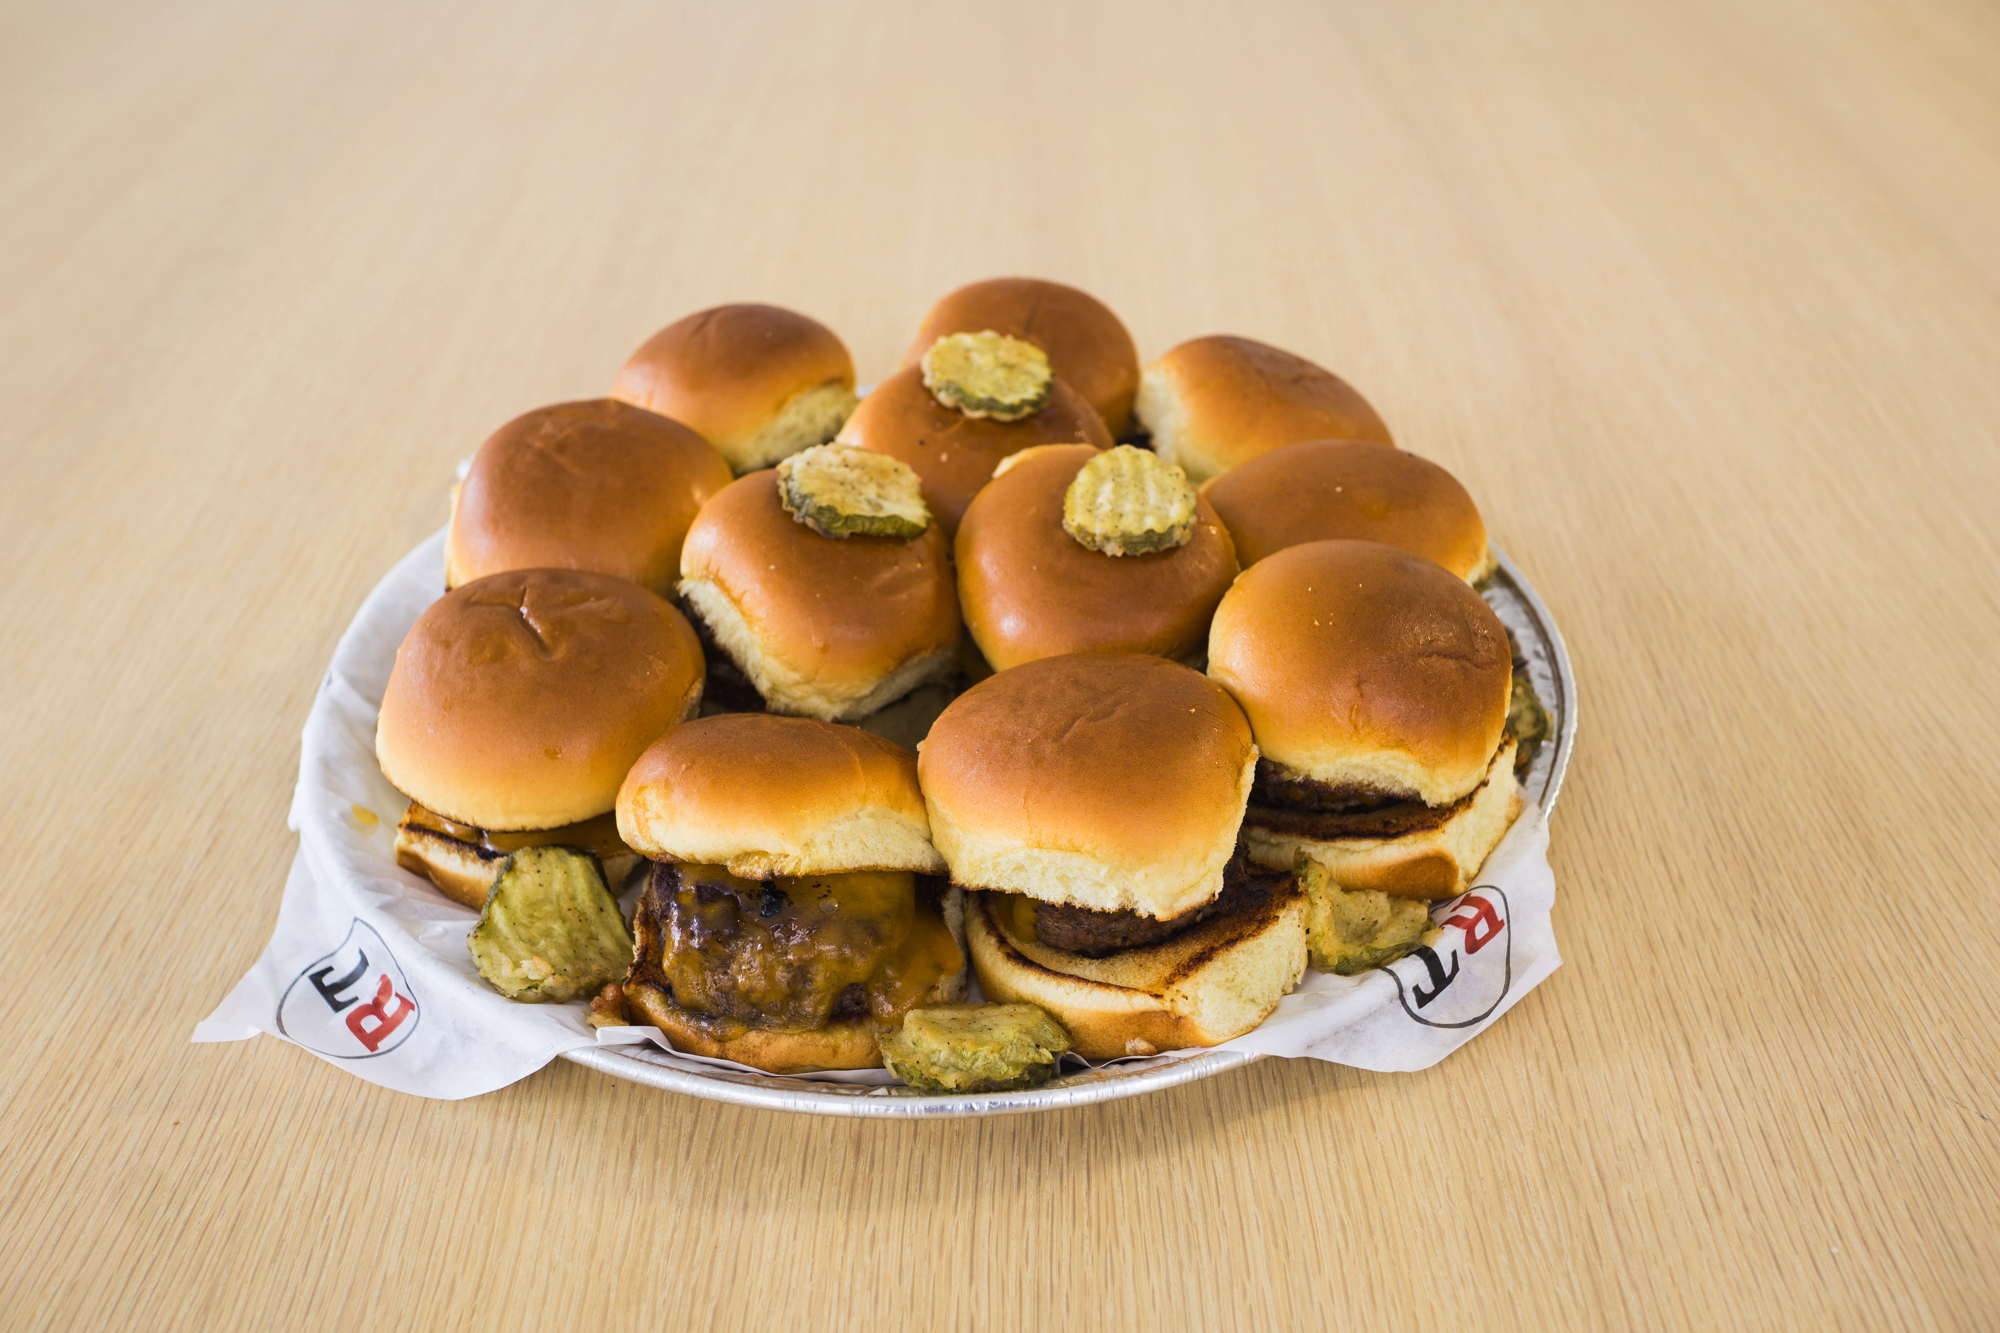 Whether you want juicy sliders or filling wraps, it's easy to find delicious catering options from Ruby Tuesday.